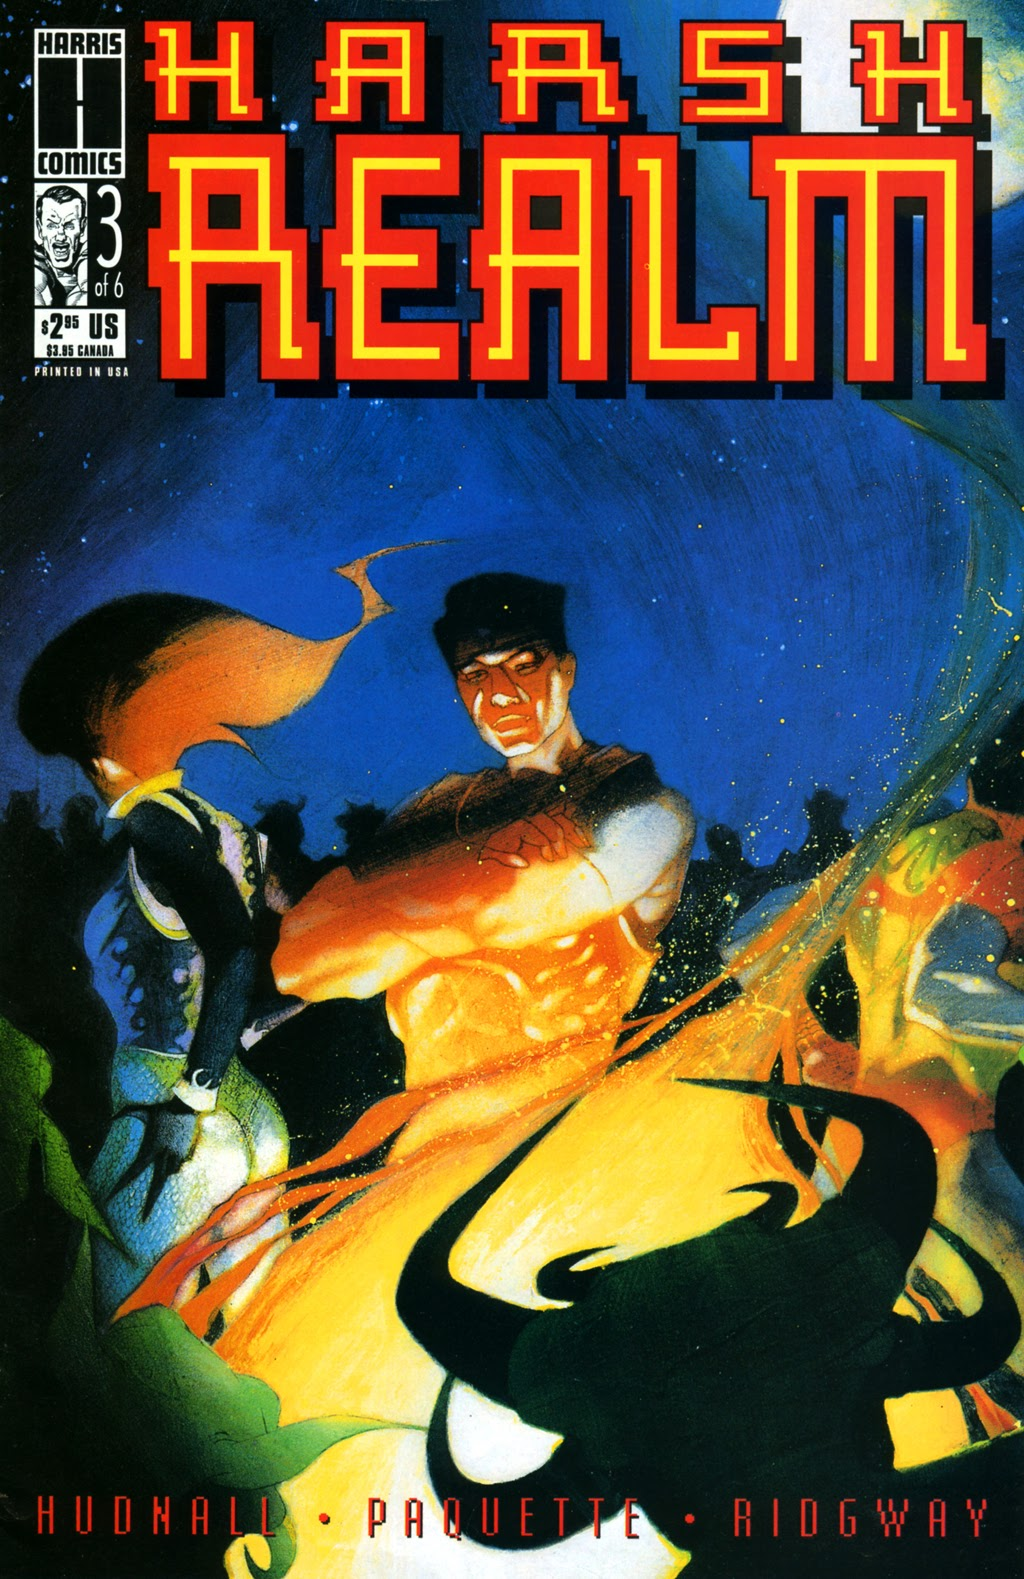 Read online Harsh Realm comic -  Issue #3 - 1